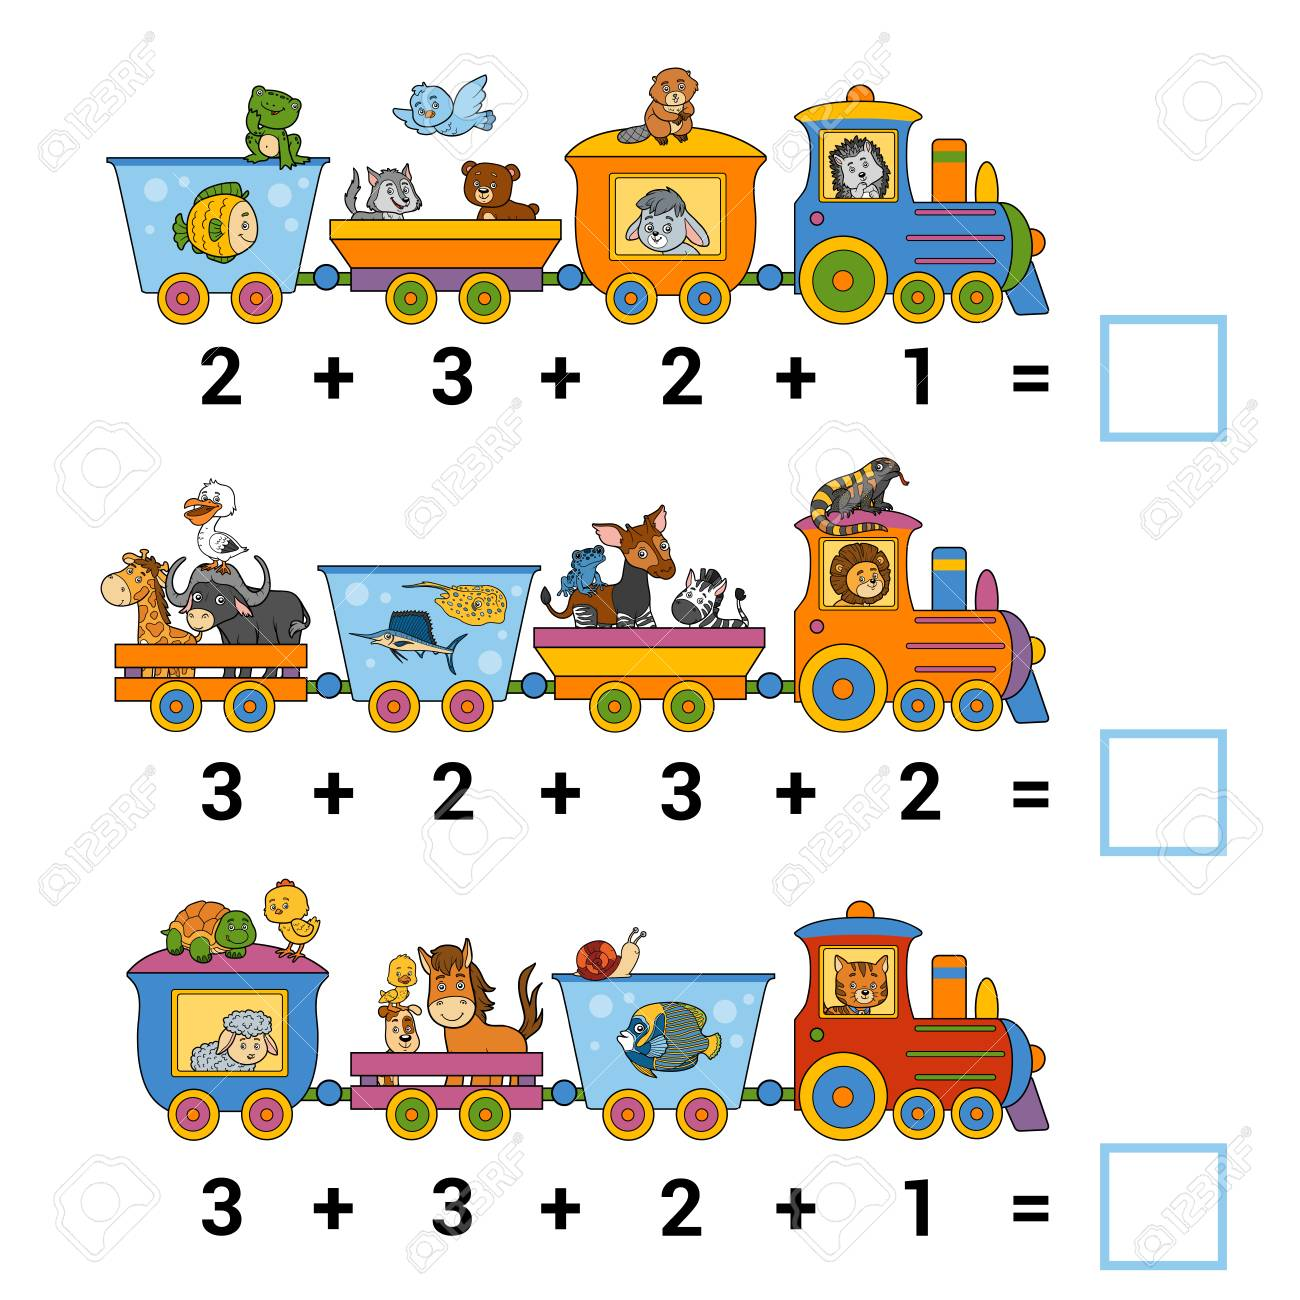 Counting Game for Preschool Children. Educational a mathematical game. Count the animals on the train and write the result. Tasks for addition - 77426690